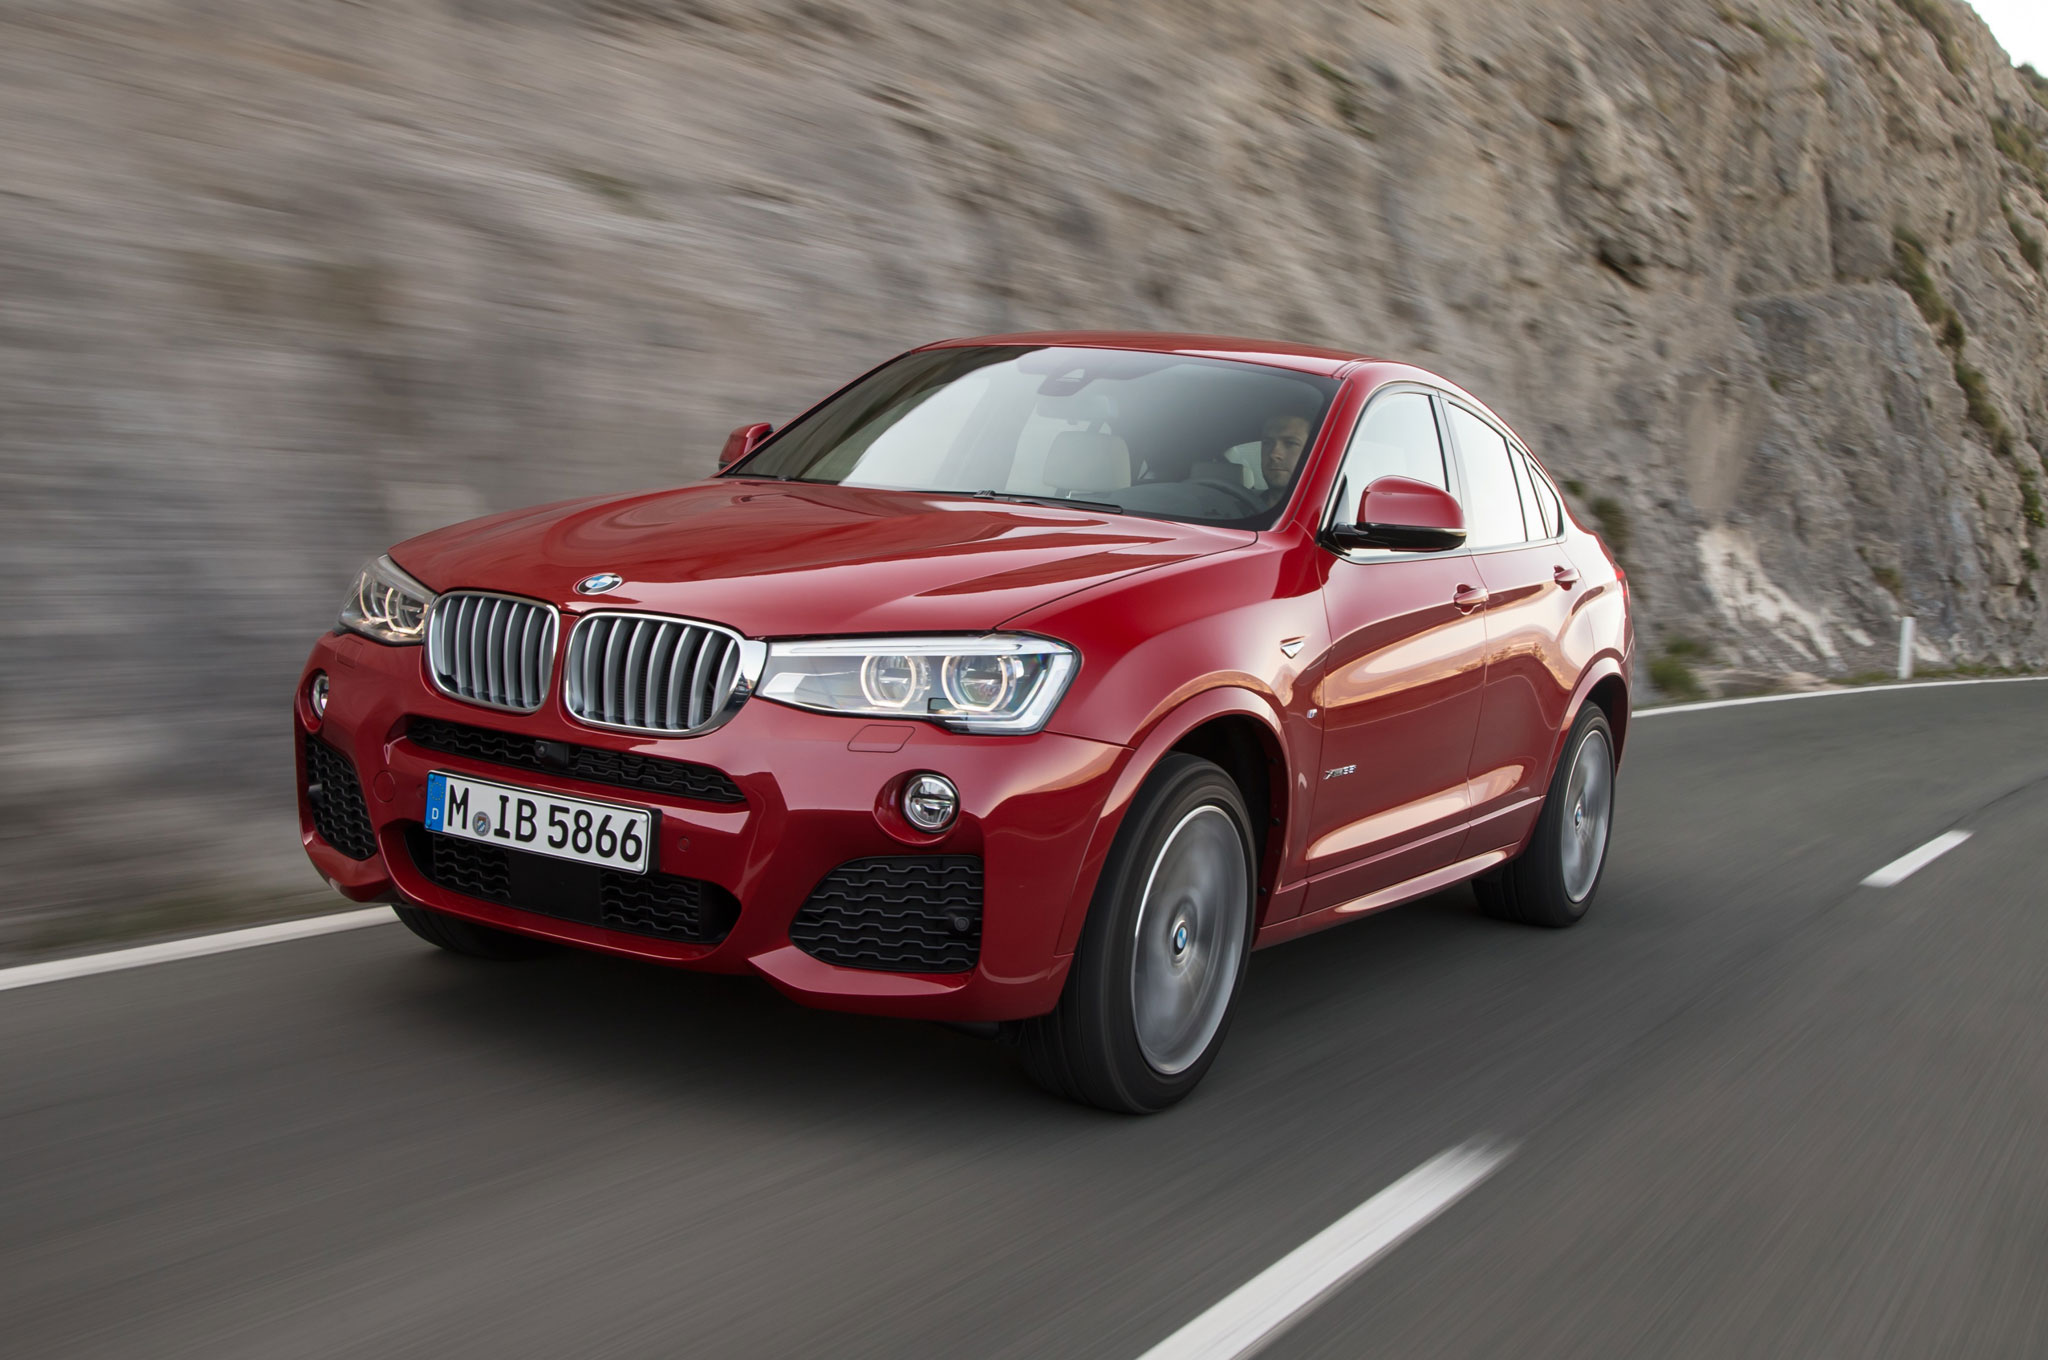 2015 BMW X4 Front Side View Down Road1